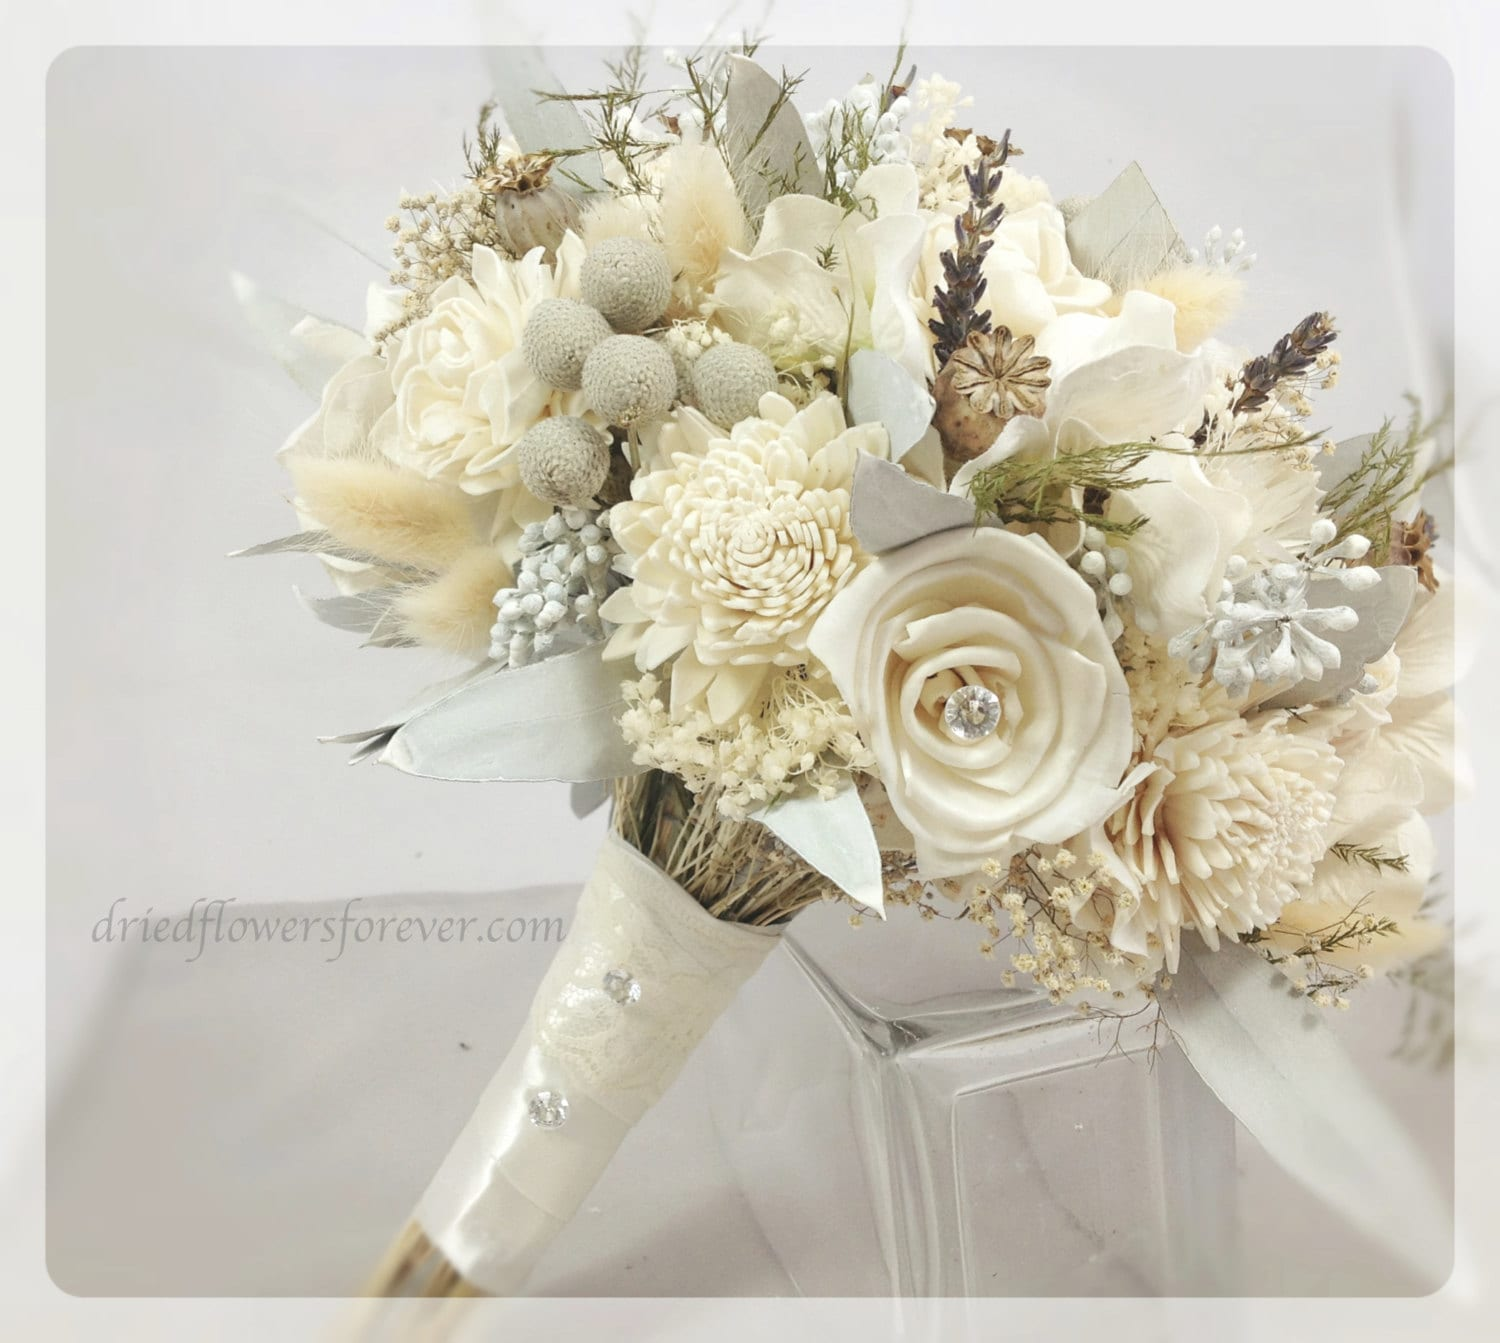 Dried preserved flower wedding bouquet alternative bridal etsy dried preserved flower wedding bouquet alternative bridal bouquets gem cream white sola gray lavender brunia silver ice collection izmirmasajfo